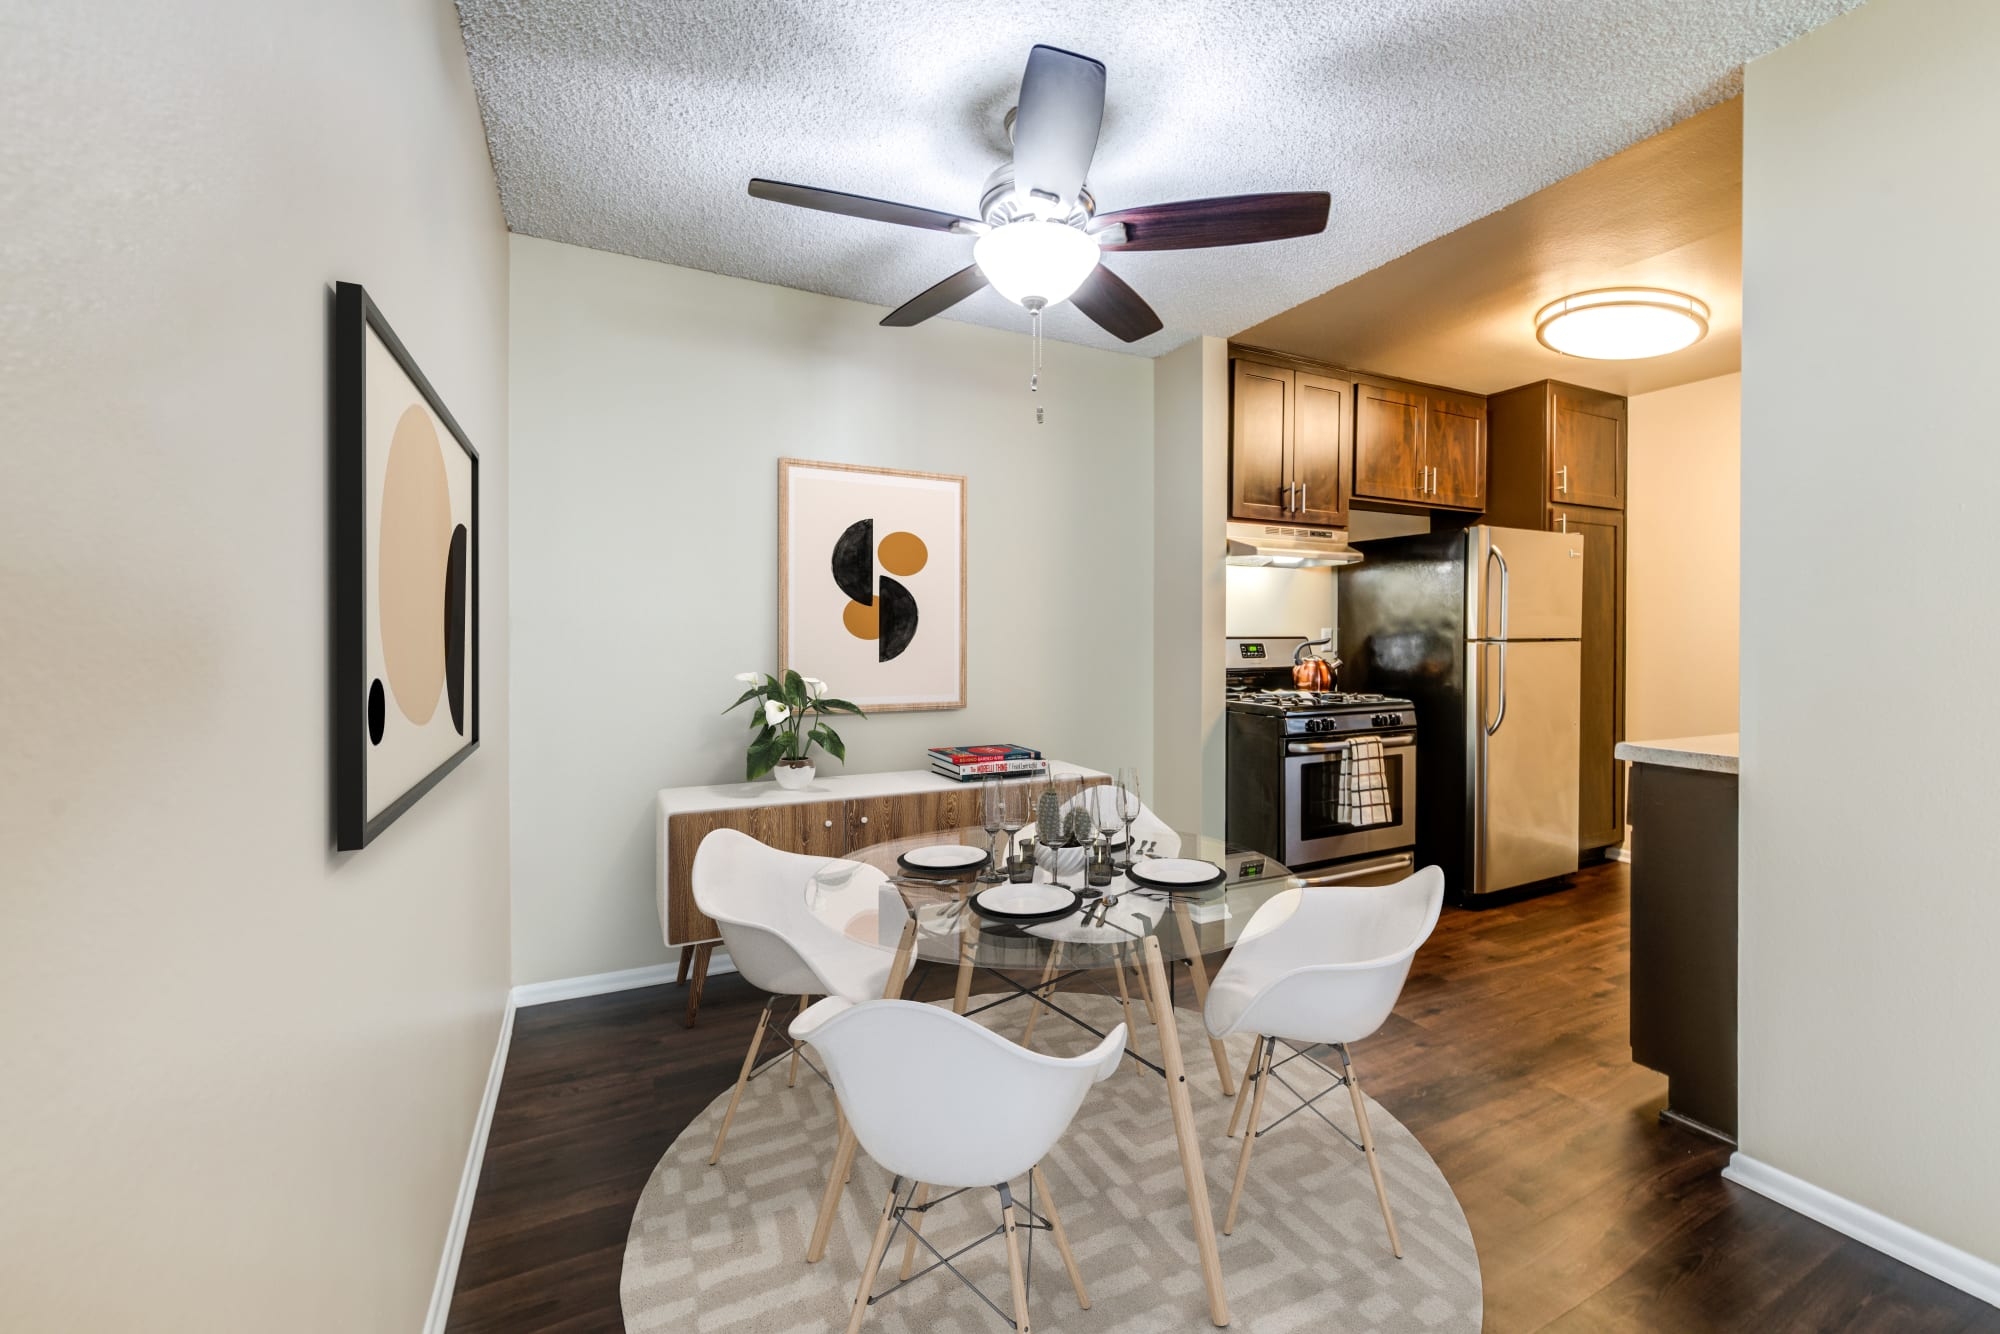 Dining room and kitchen with hardwood-style floors at Kendallwood Apartments in Whittier, California